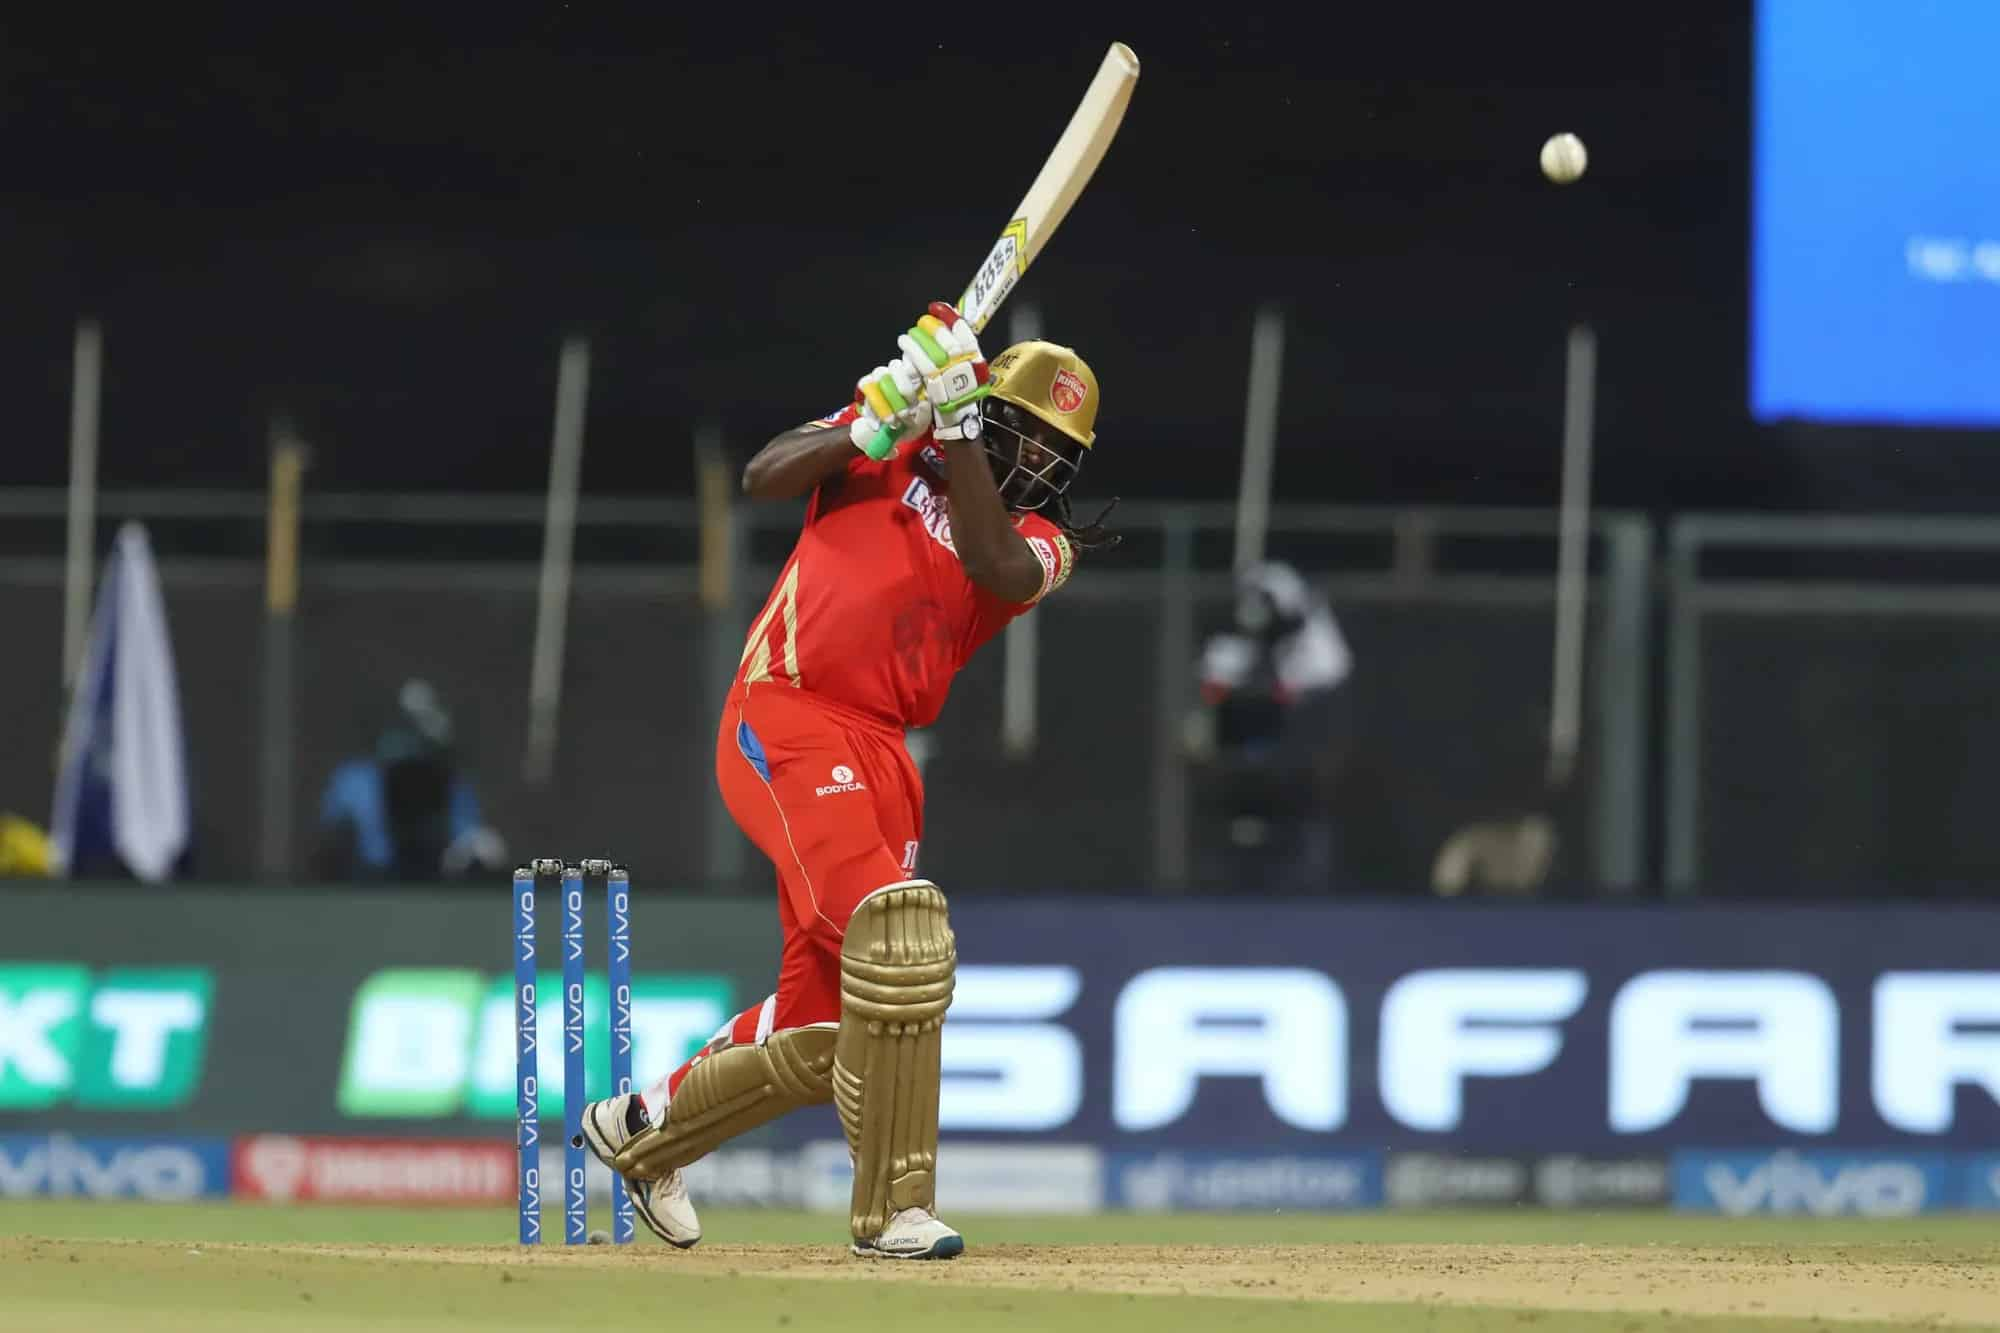 Chris Gayle Completed 350 Sixes in IPL